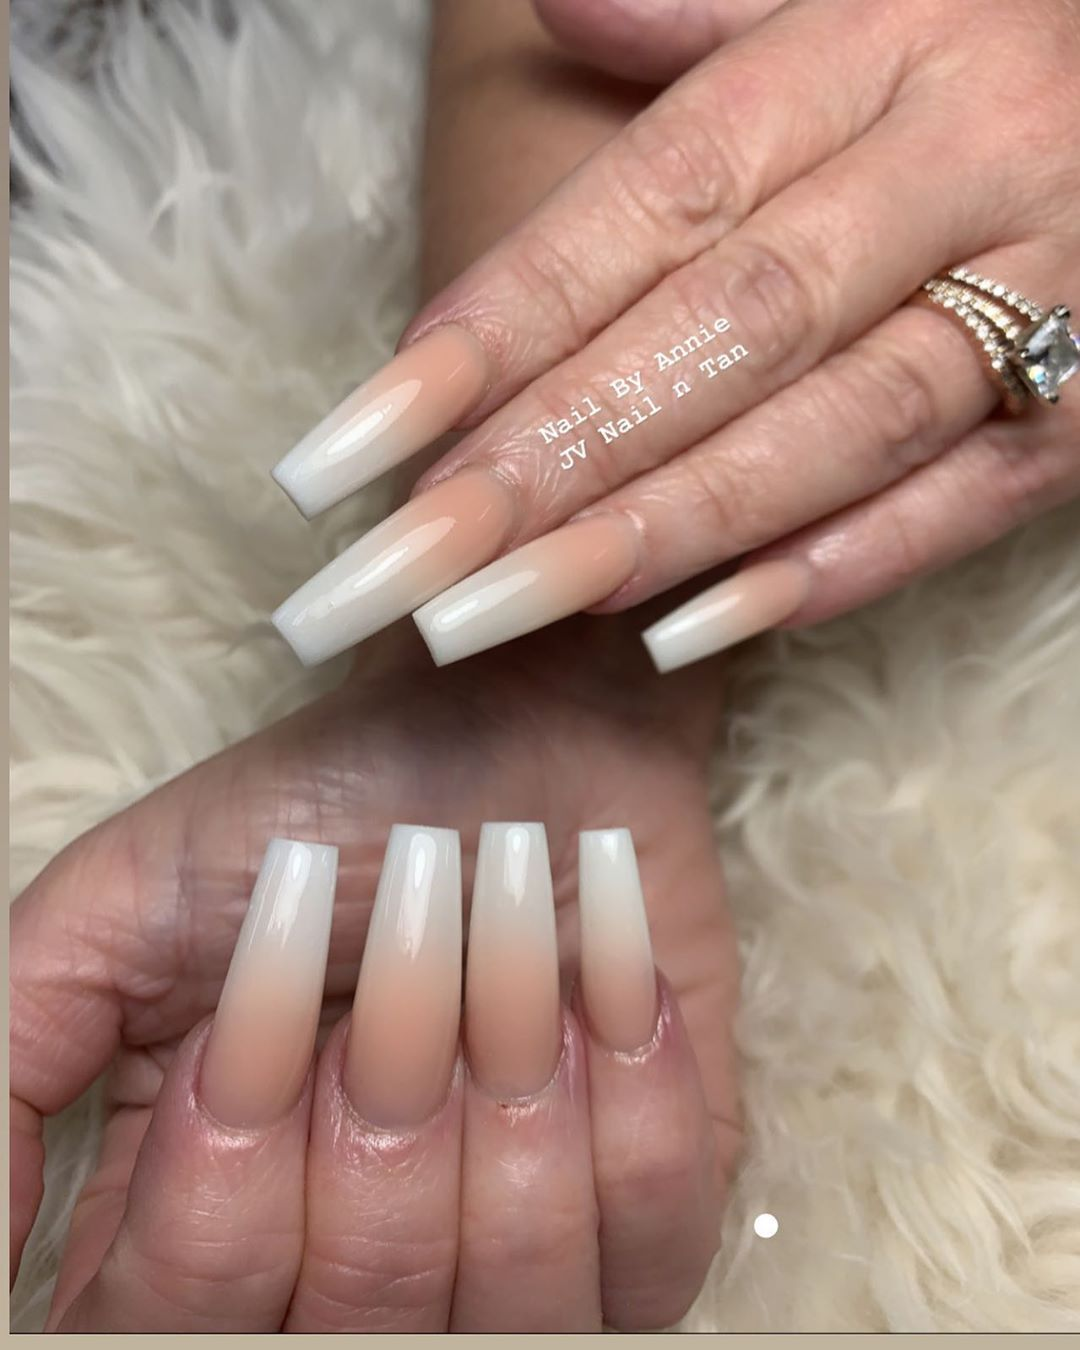 Discover Everything You Need About Nails Acrylic Nails Fail Nails Coffin Nails Desing Short Nails Nail Ideas Nail Art N Nails Nails Desing Coffin Nails